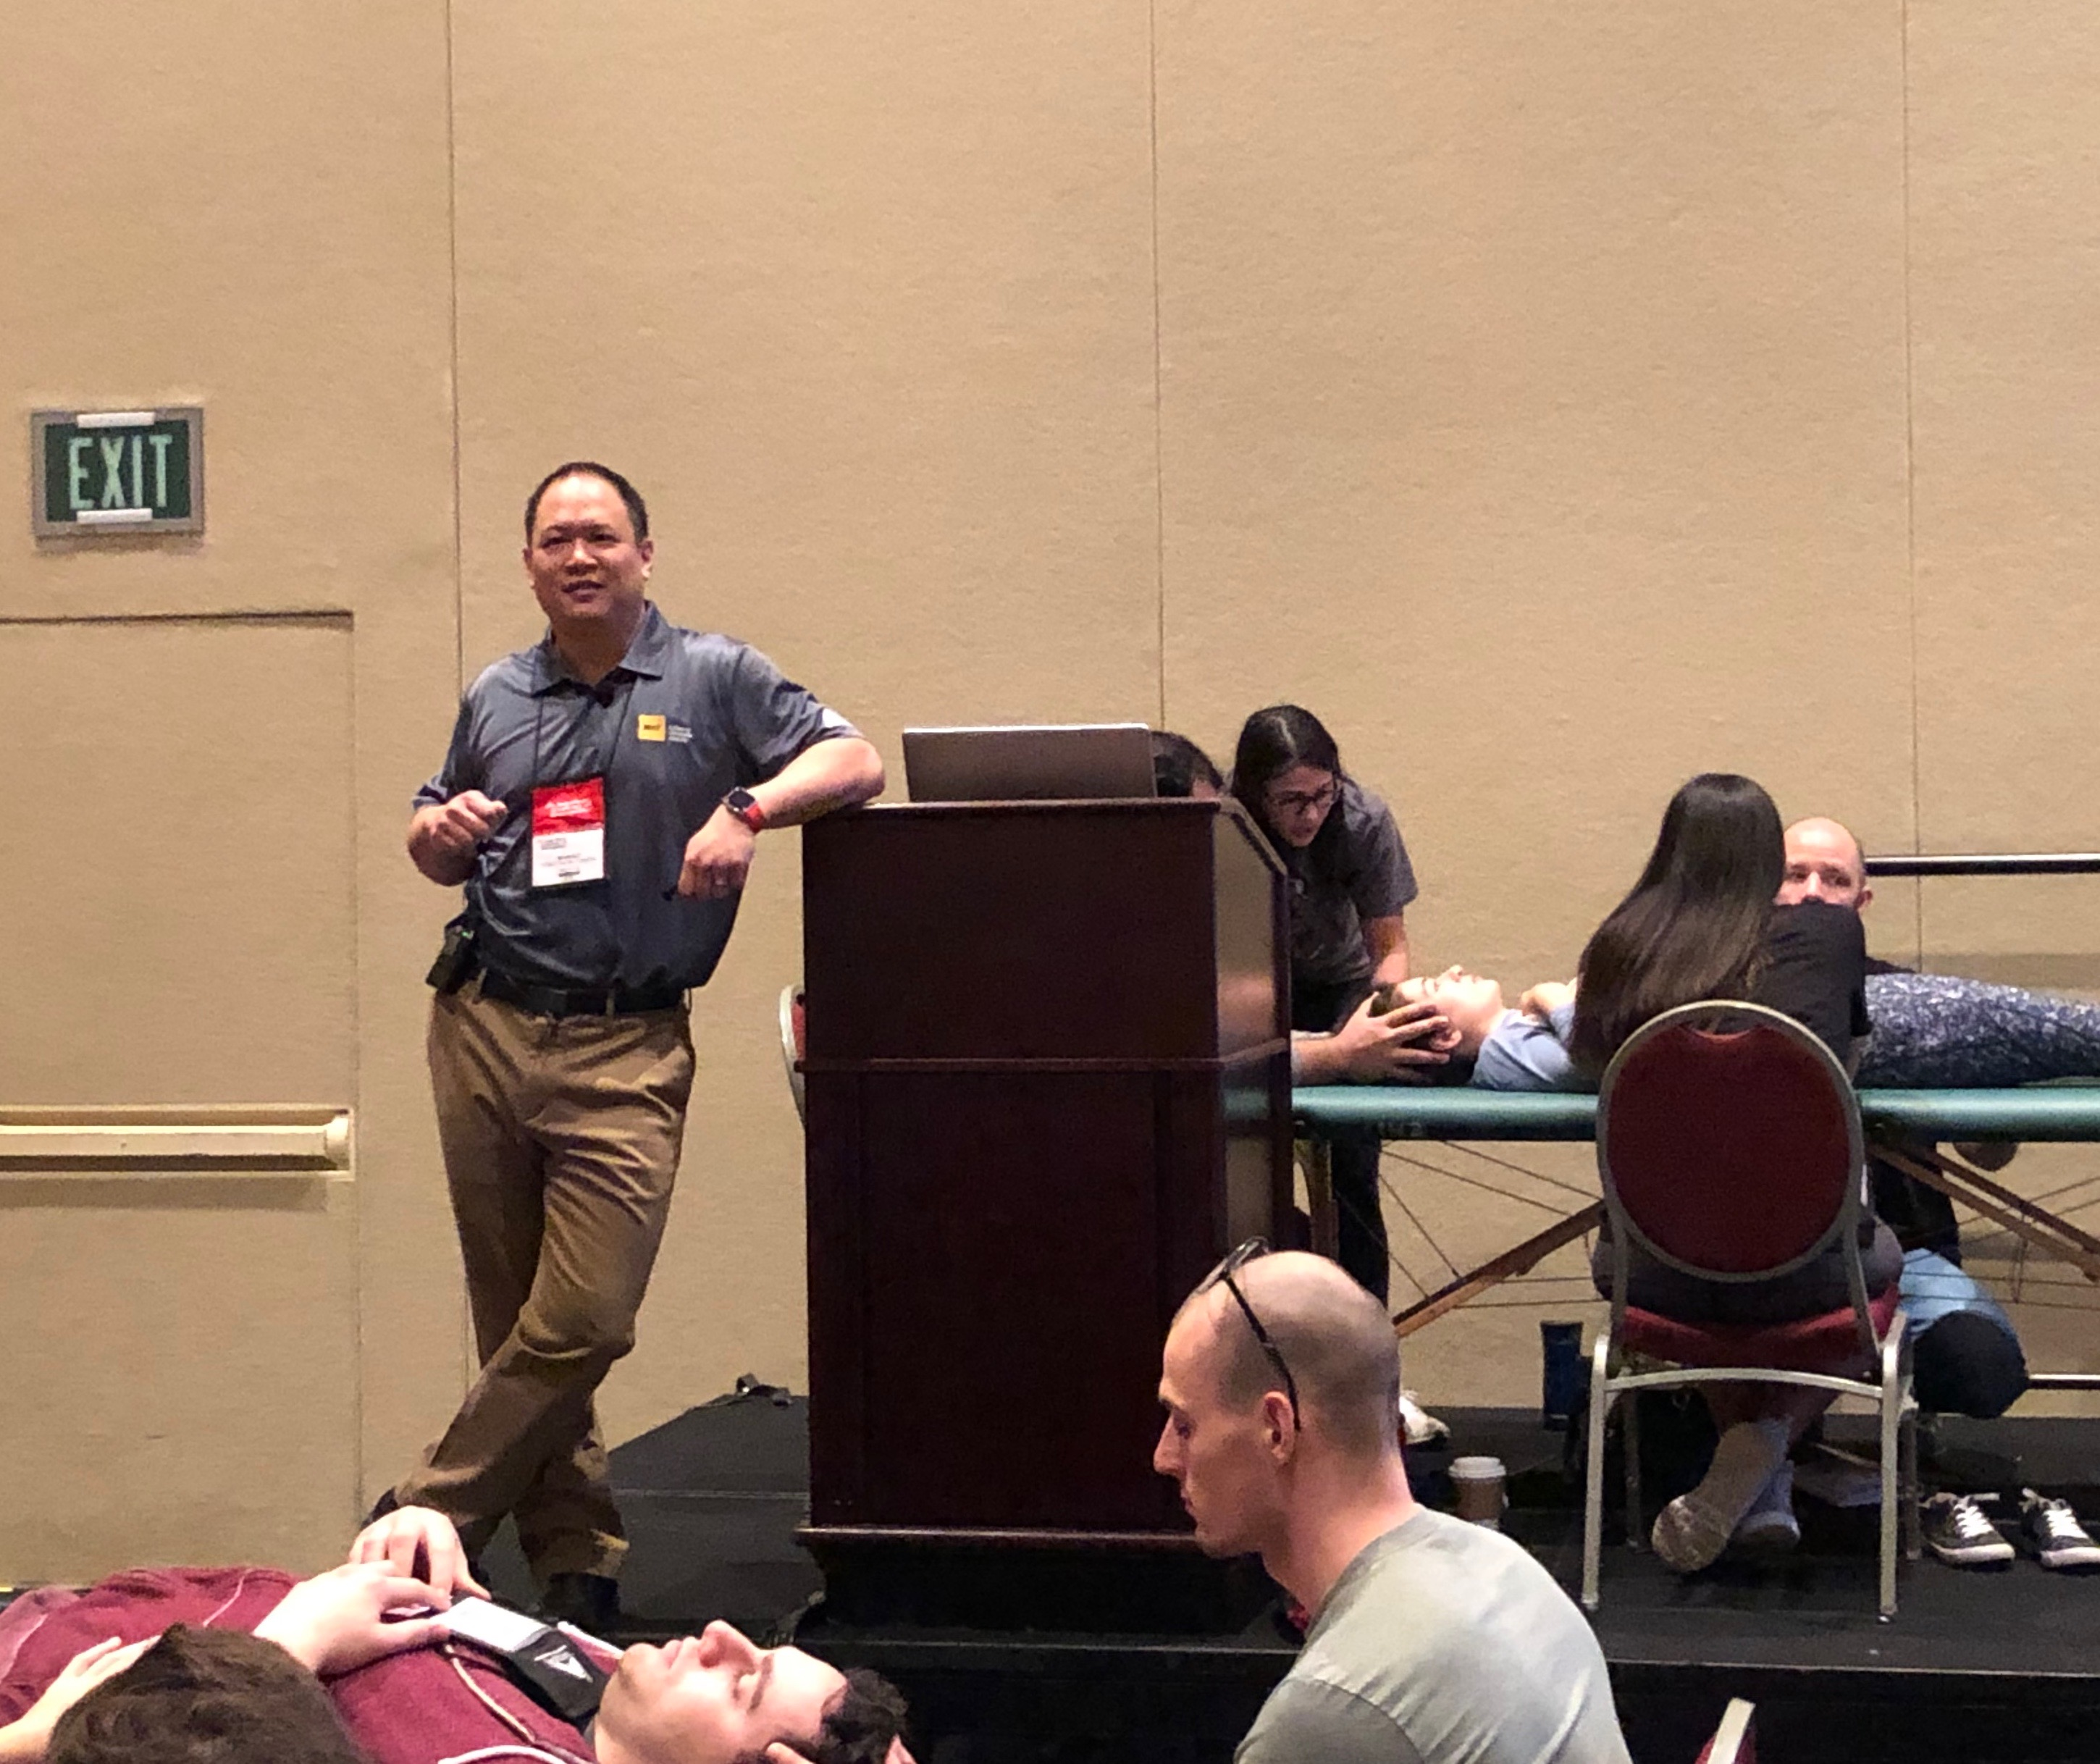 Dr. Sheldon Yao DO, leading an Osteopathic Manipulative Medicine workshop at the AAO Convocation 2019